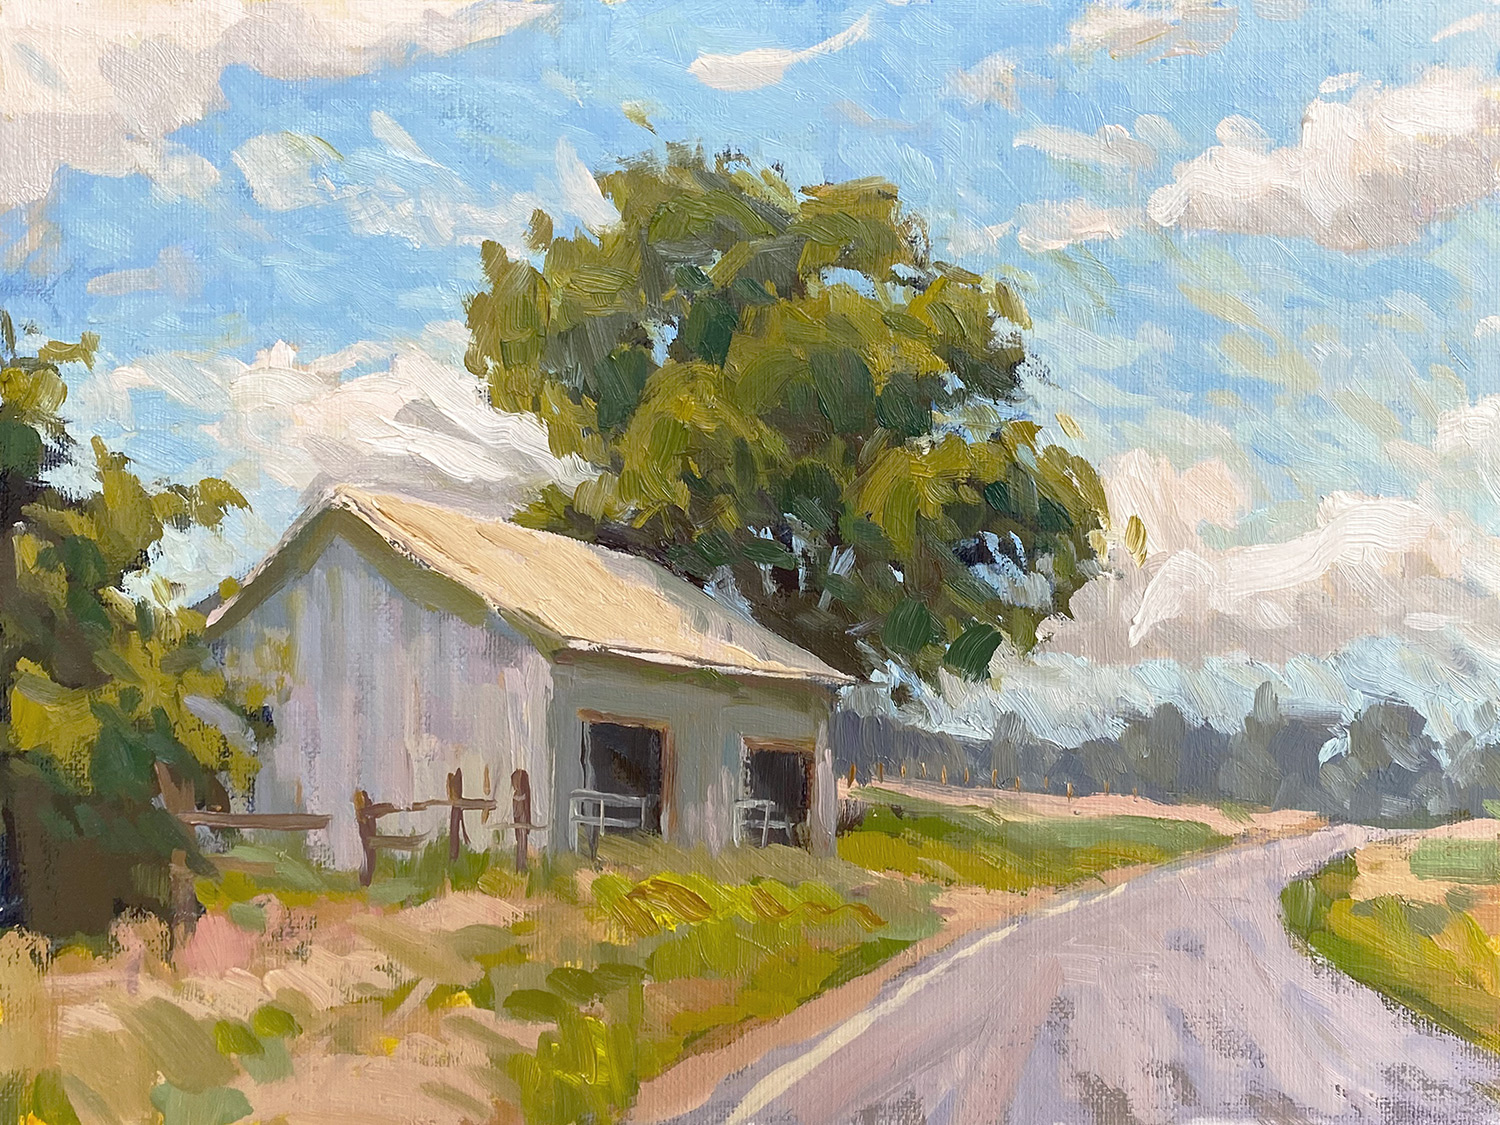 Around the Bend - Impressionist Painting by Adam Houston